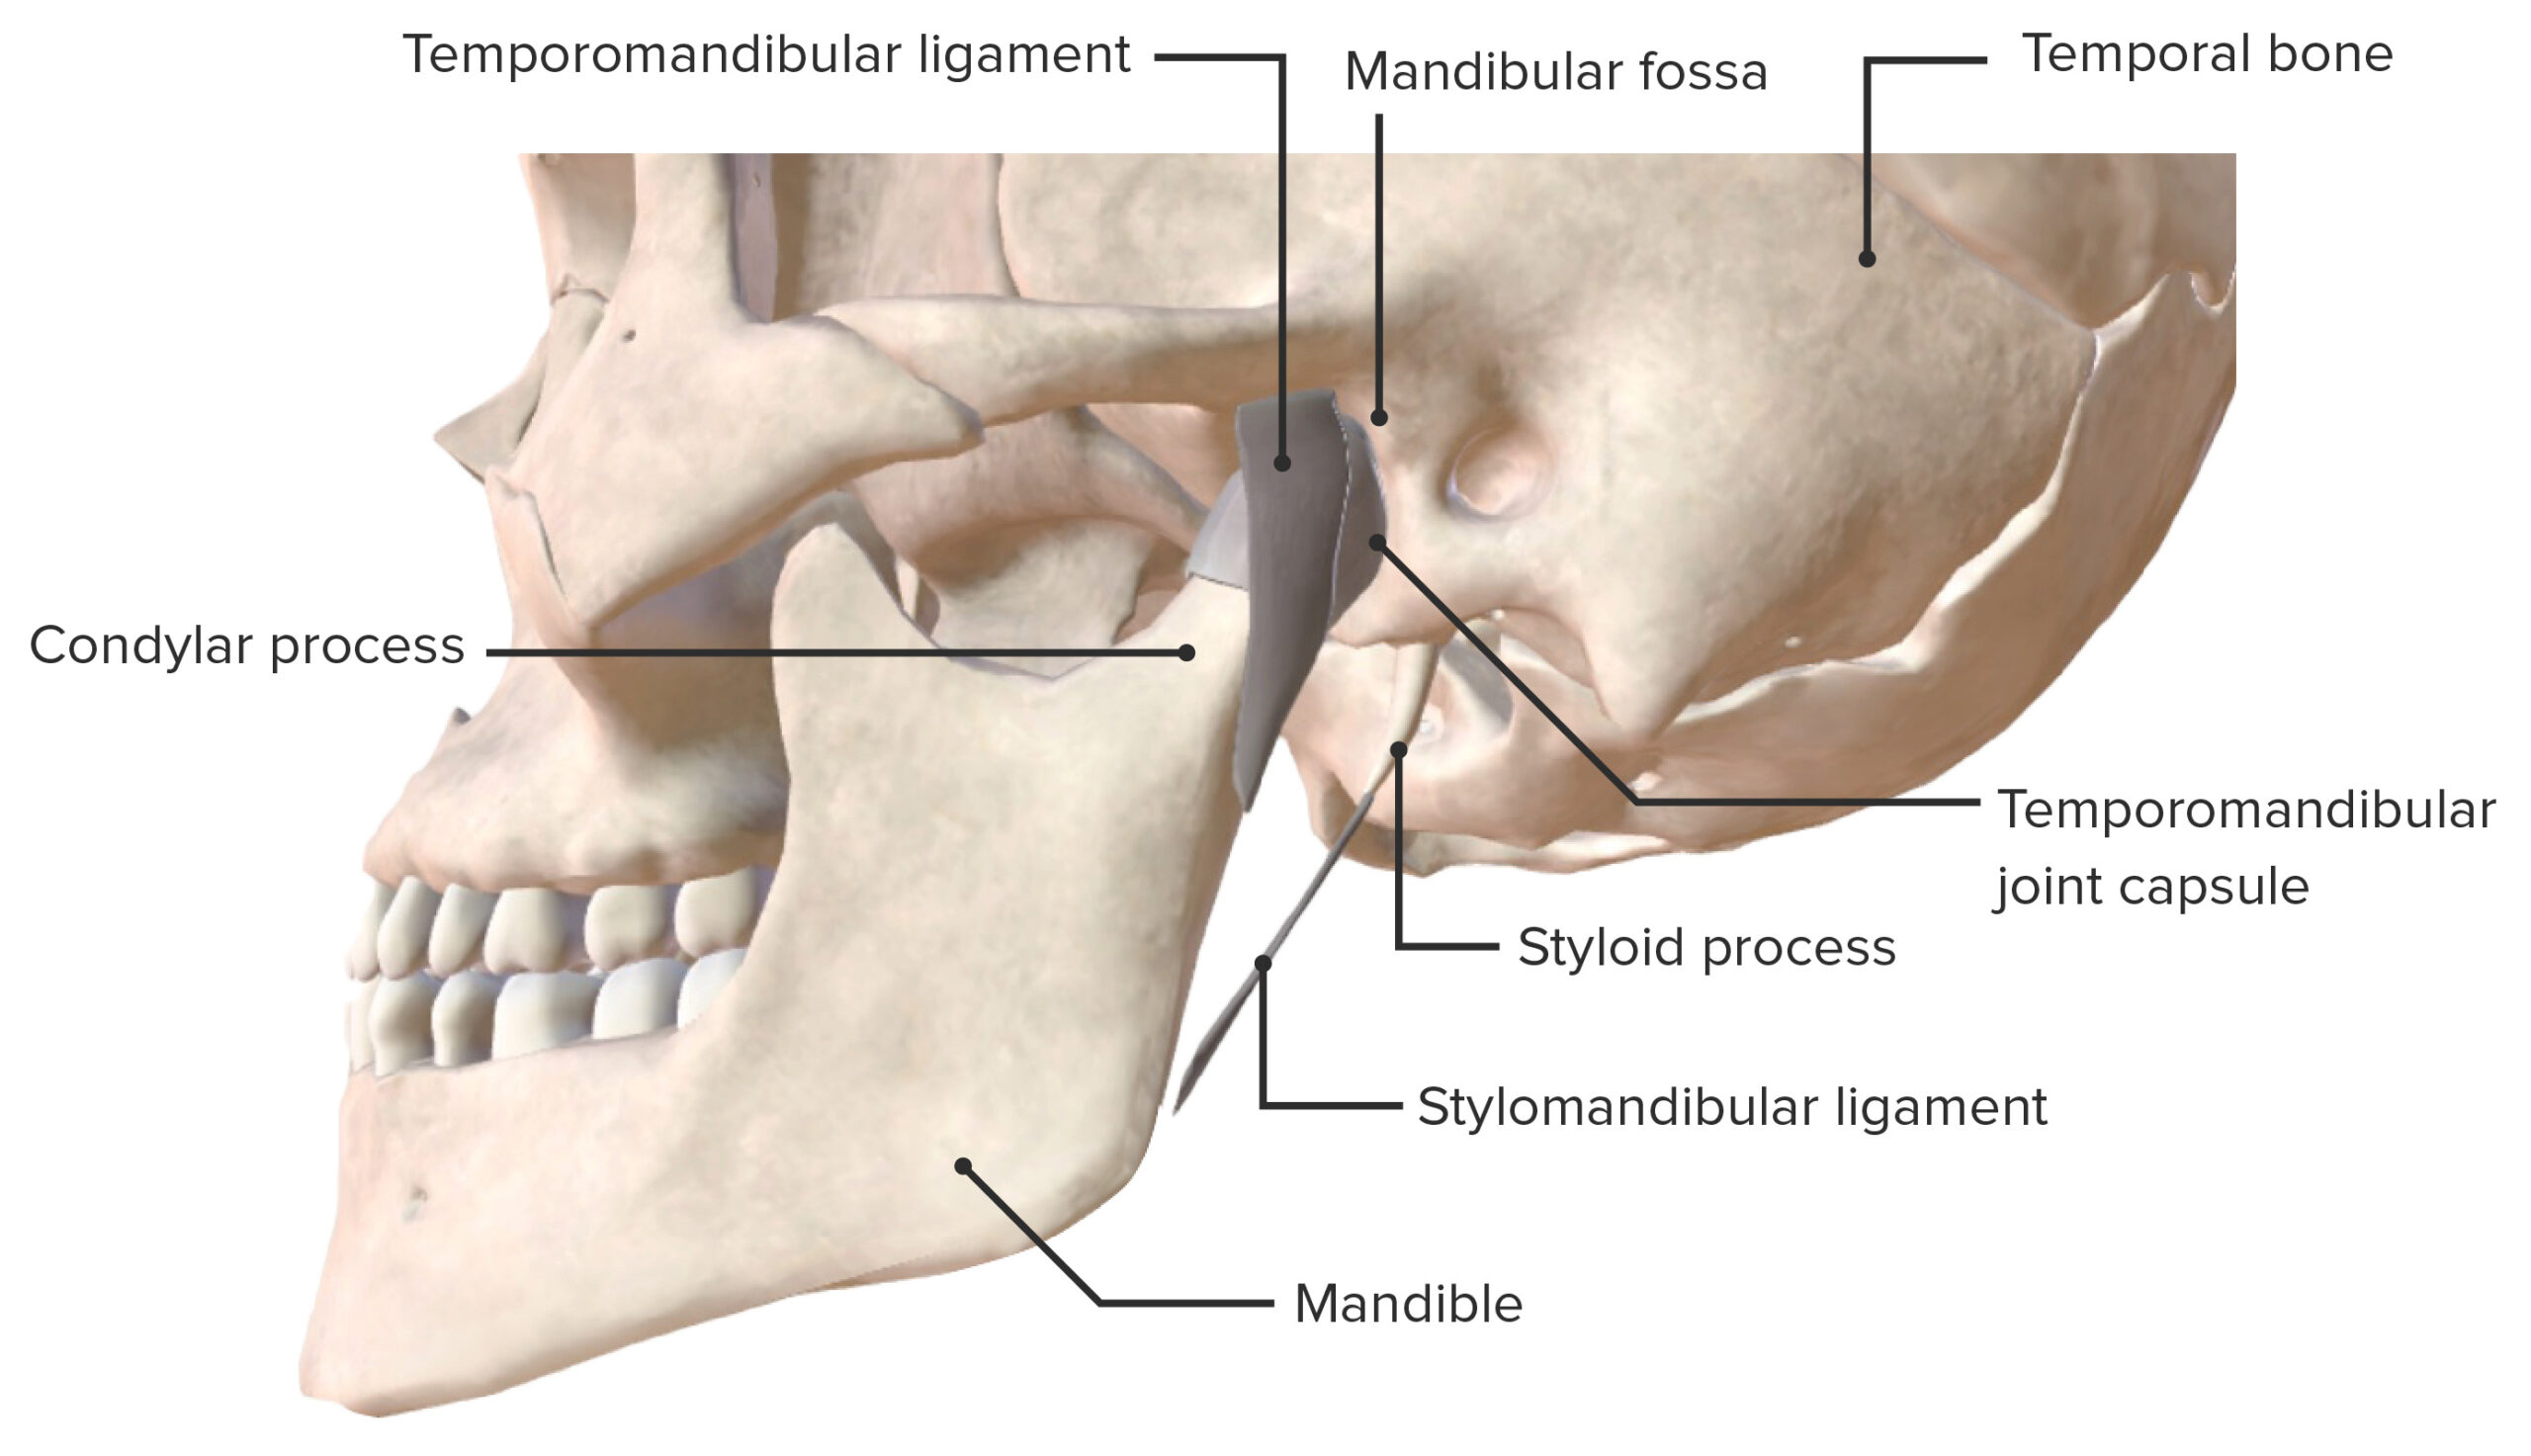 Lateral view of the temporomandibular joint and supporting ligaments